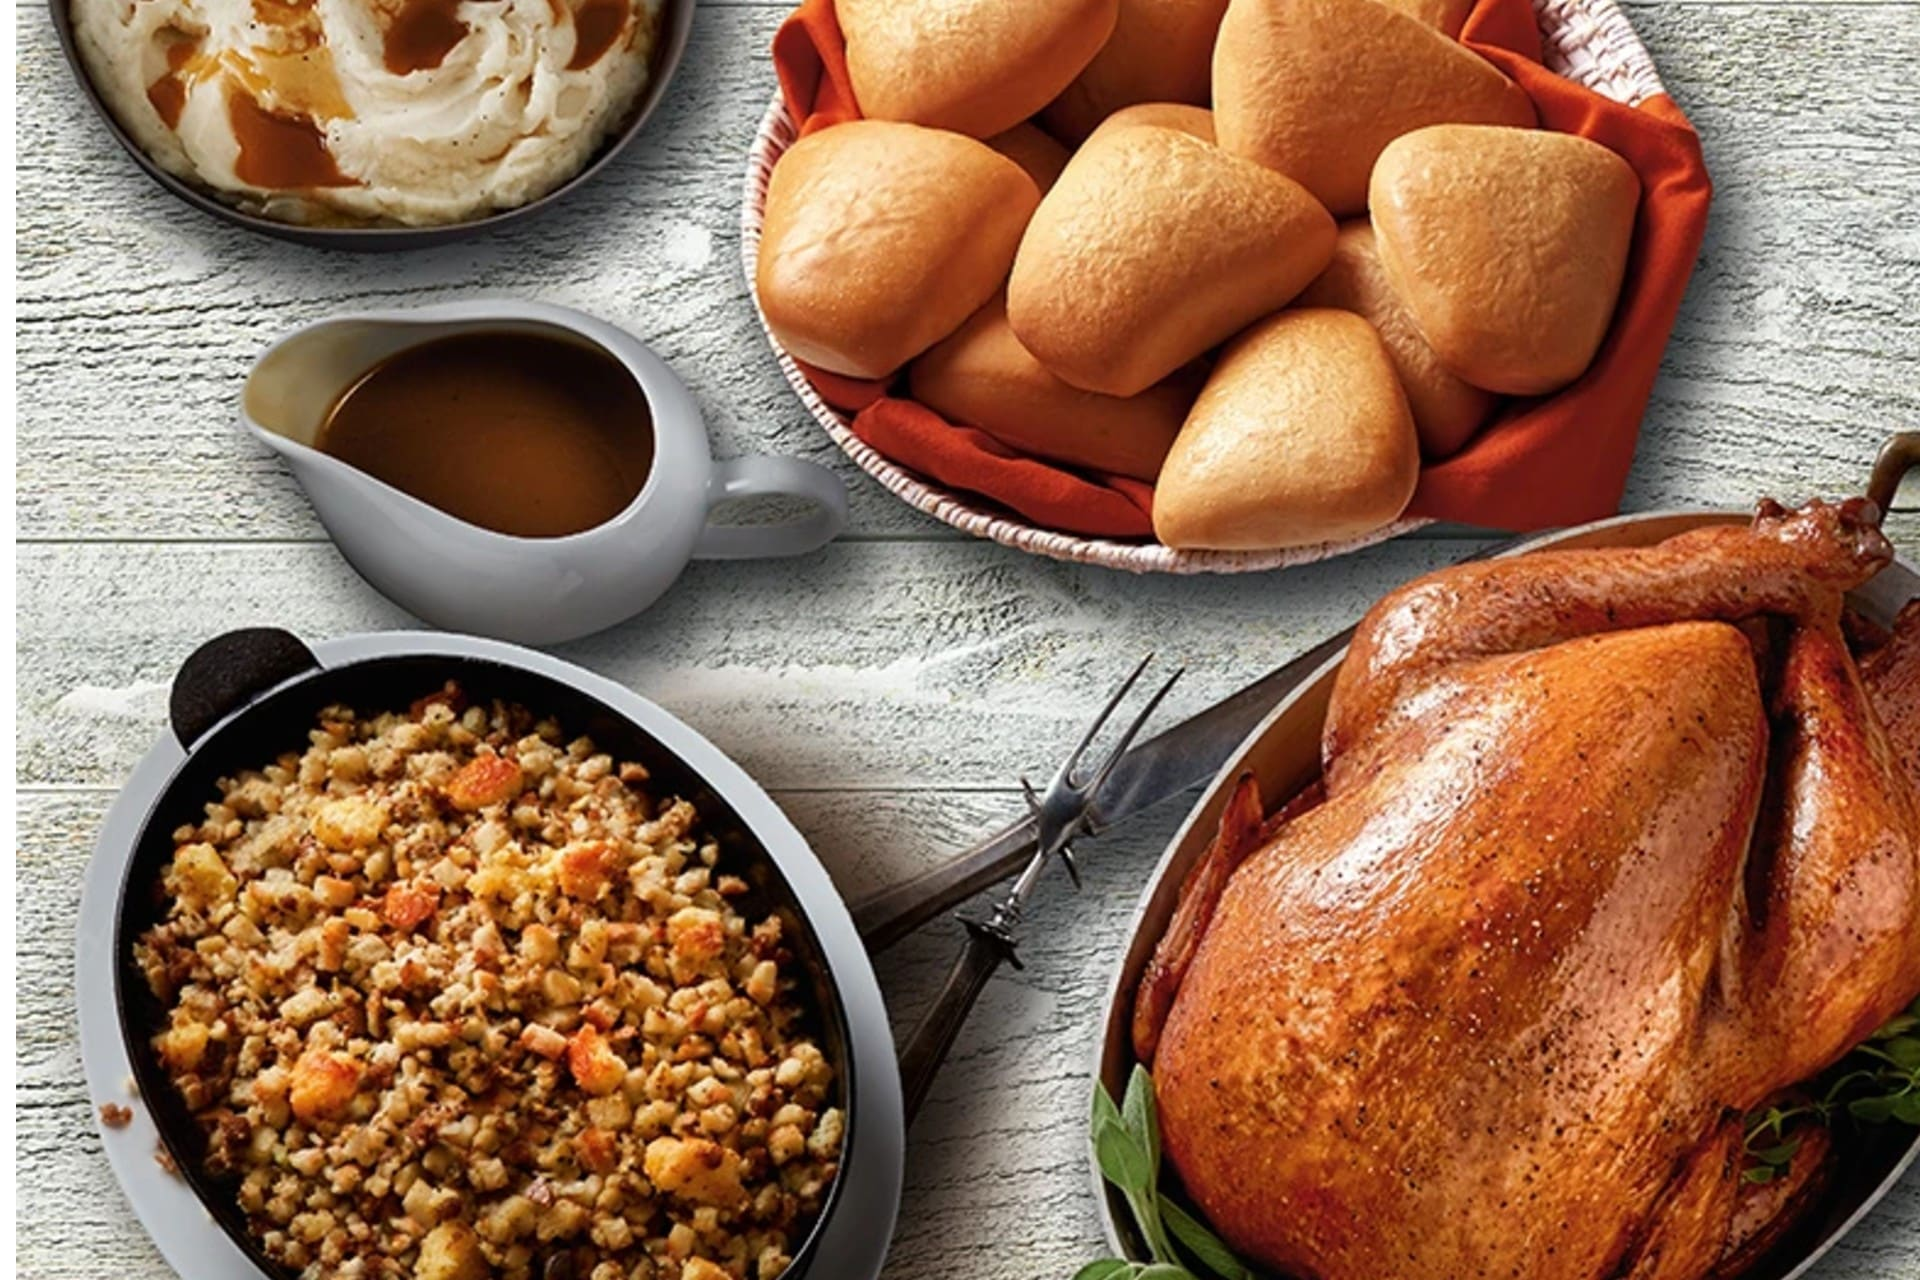 Boston Market Christmas Dinner Delivered